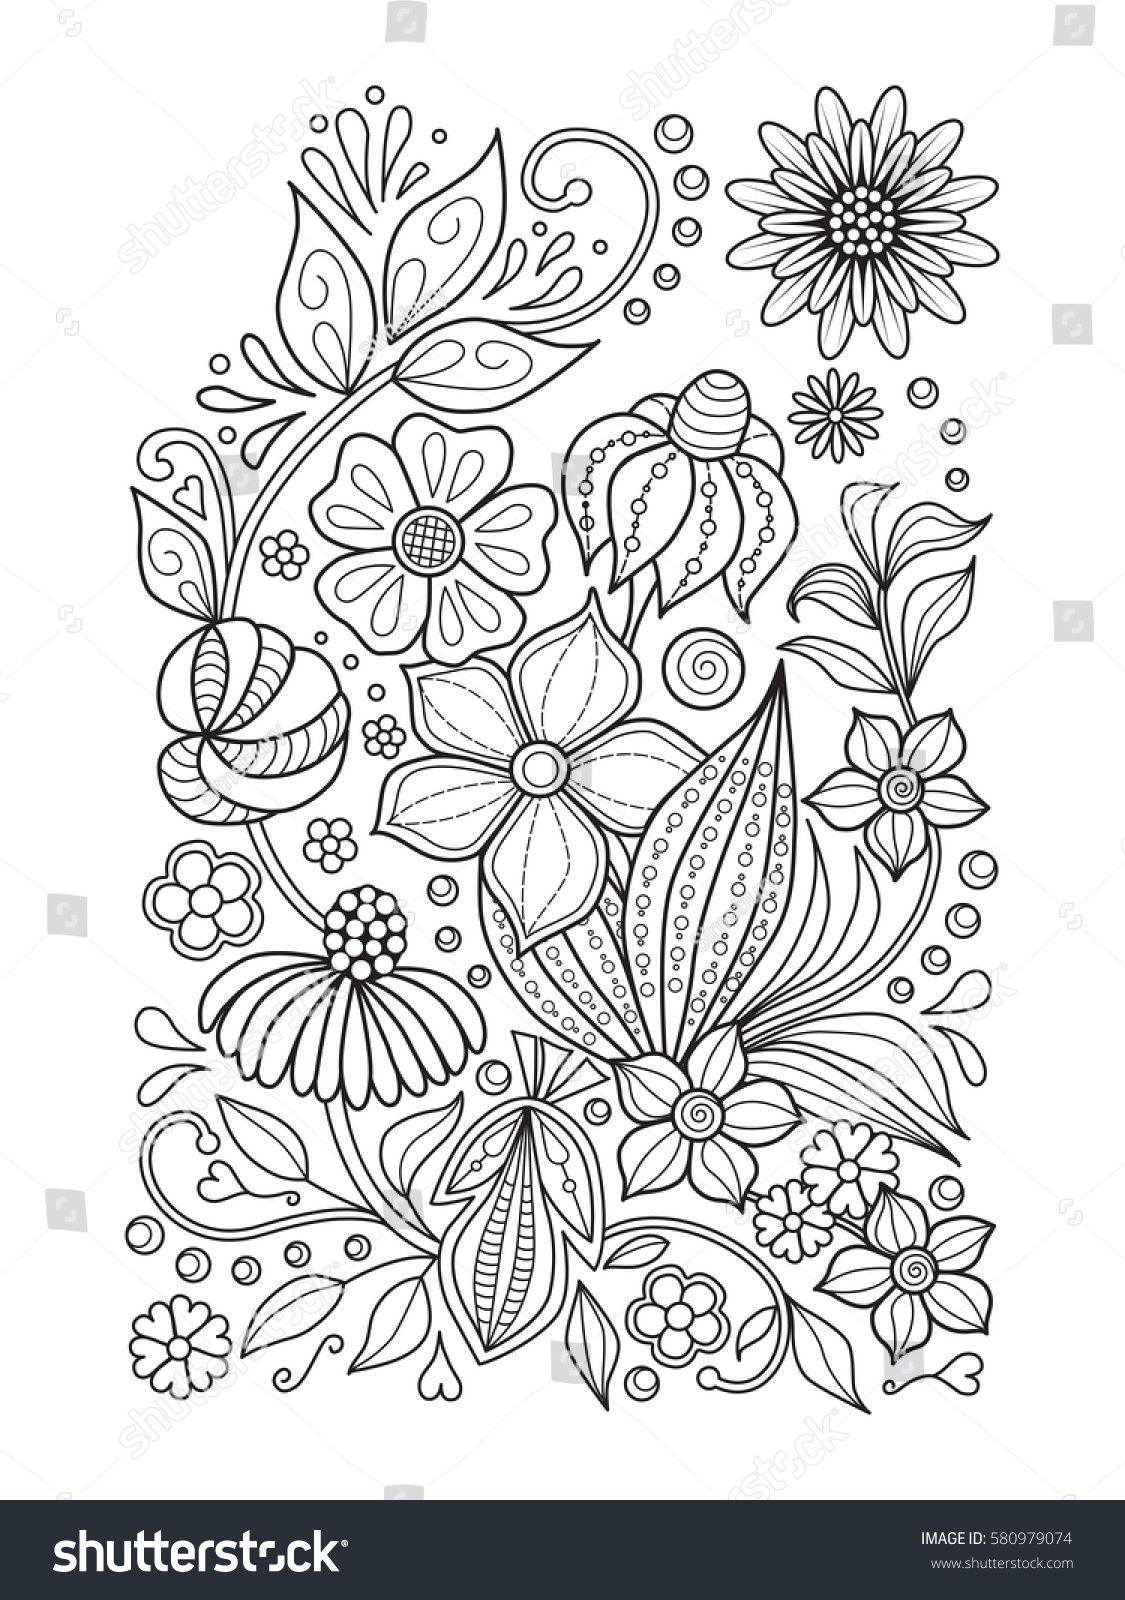 Doodle Floral Pattern In Black And White Page For Coloring Book Relaxing Job For Children And Adults In 2020 Coloring Books Zentangle Patterns Floral Illustrations